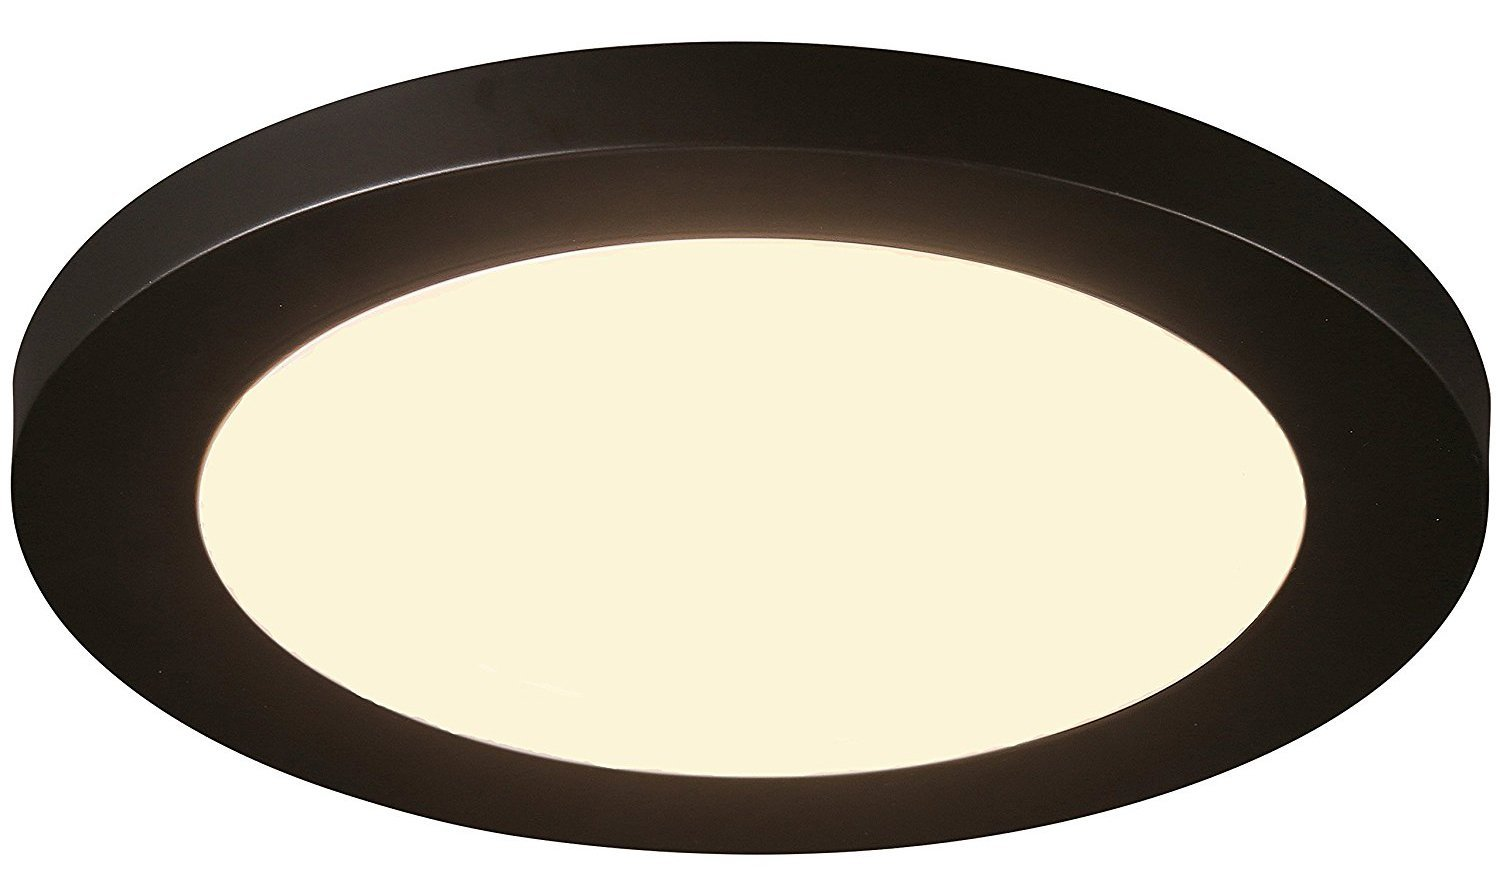 Cloudy Bay 12 inch Ceiling Light LED Flush Mount,17W Dimmable,3000K Warm White,1100lm 120W Incandescent Equivalent,Oil Rubbed Bronze Finish by Cloudy Bay